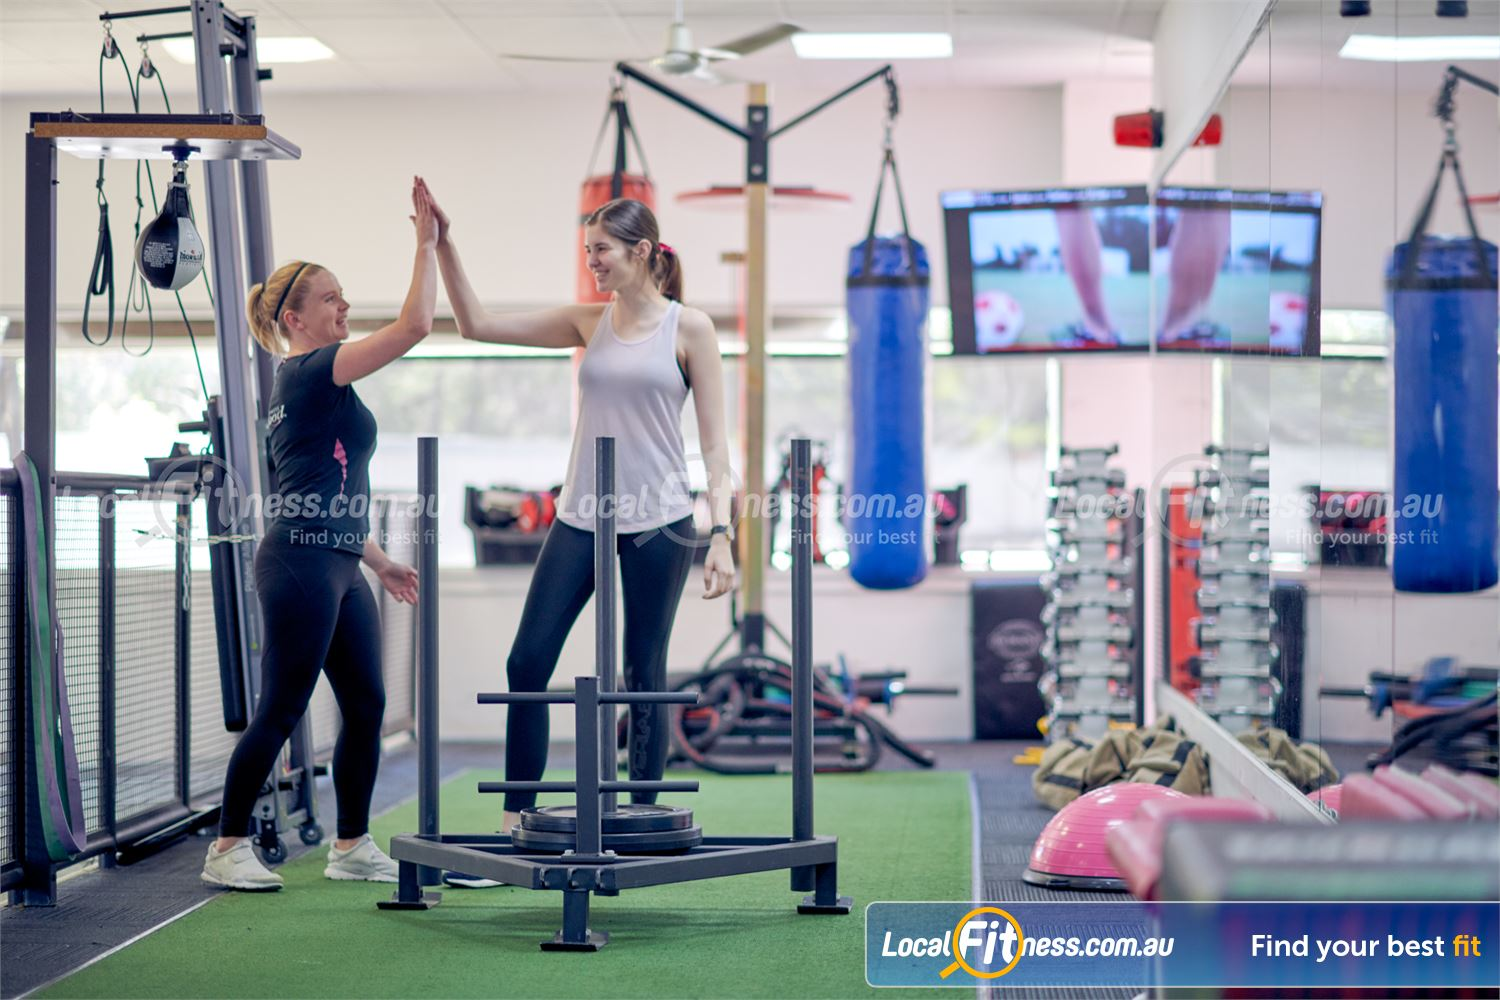 Fernwood Fitness Near Jacana Our Tullamarine personal trainers will motivate you to get results.